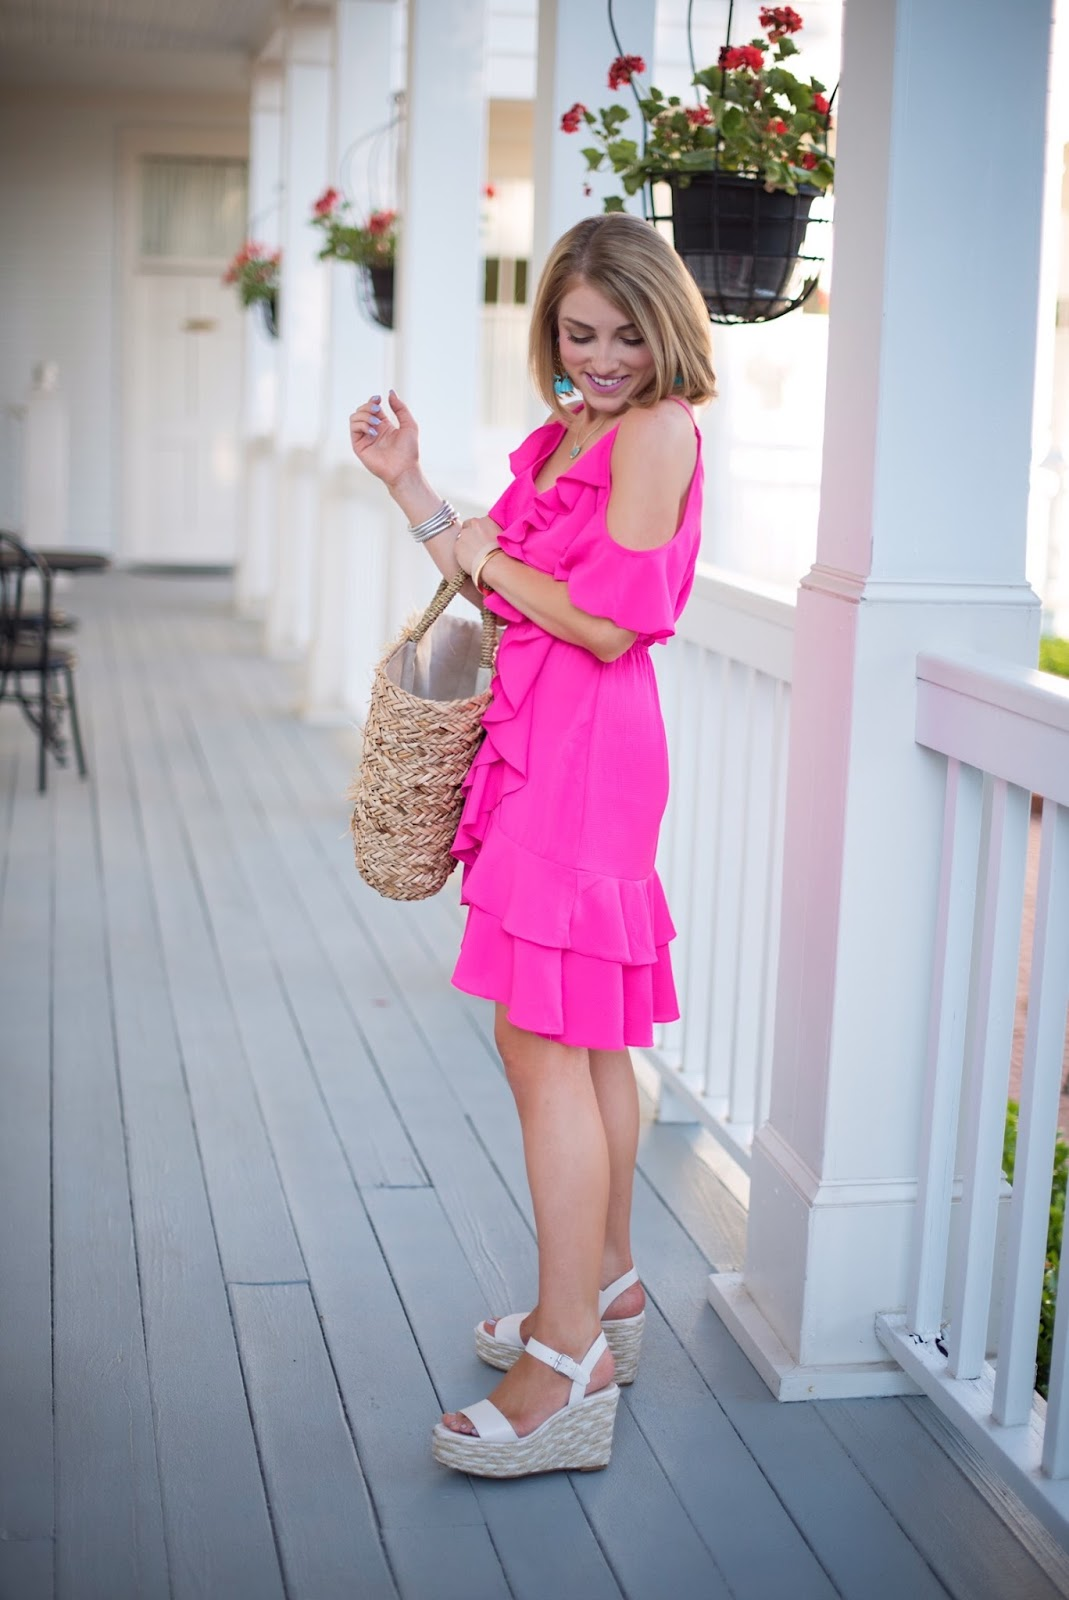 Little Pink Dress - Click through to see more on Something Delightful Blog.